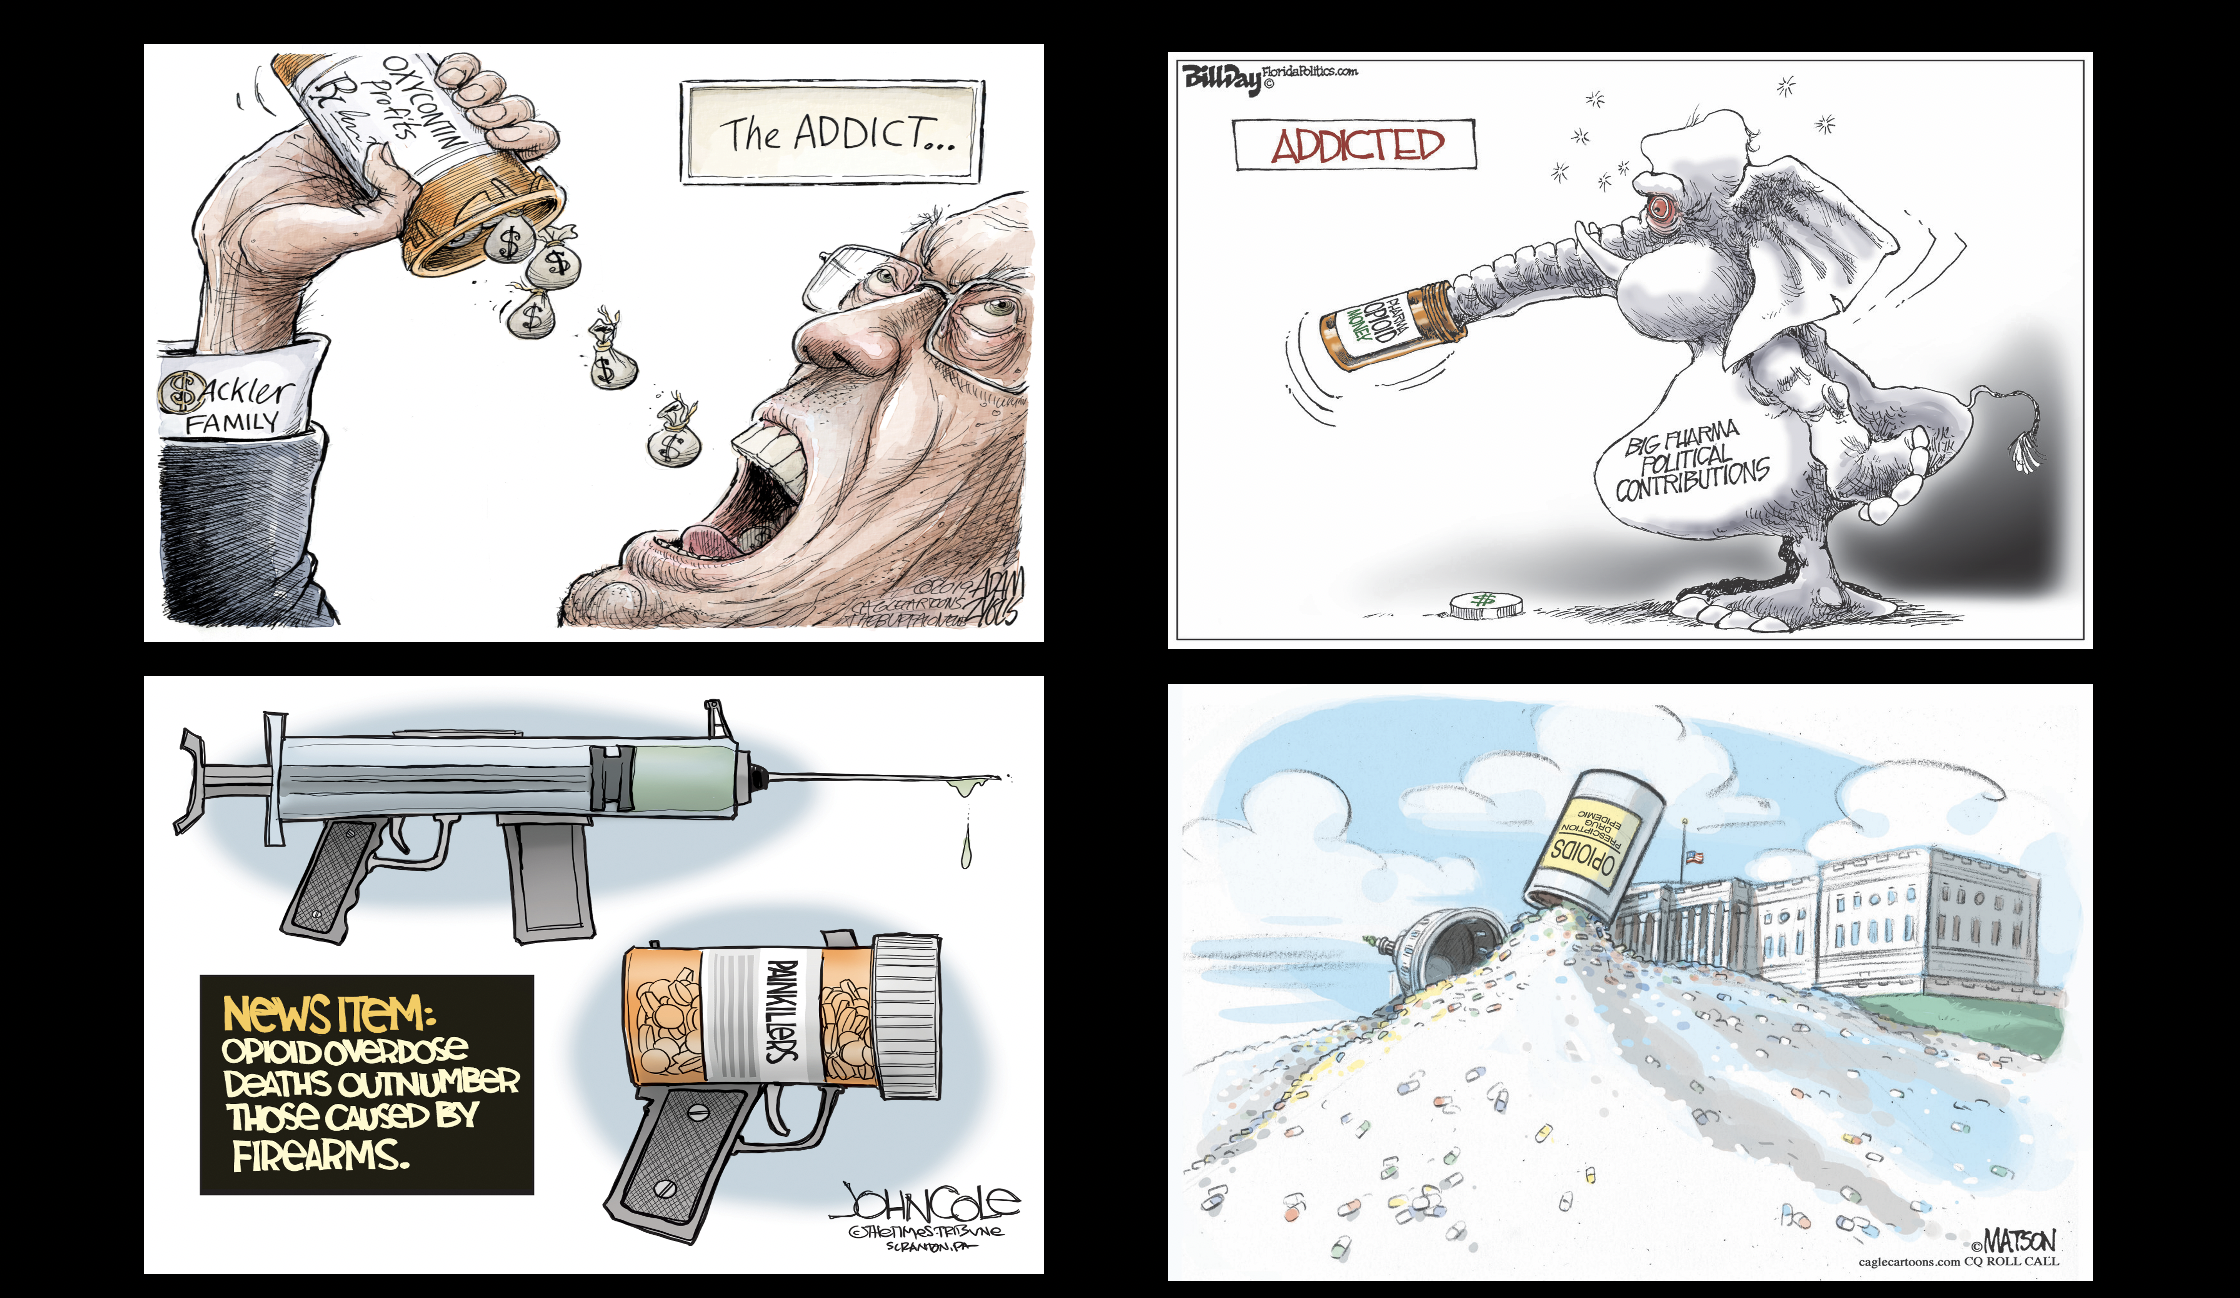 Political cartoons about the opioid crisis, Purdue Pharma and the Sakcler family.